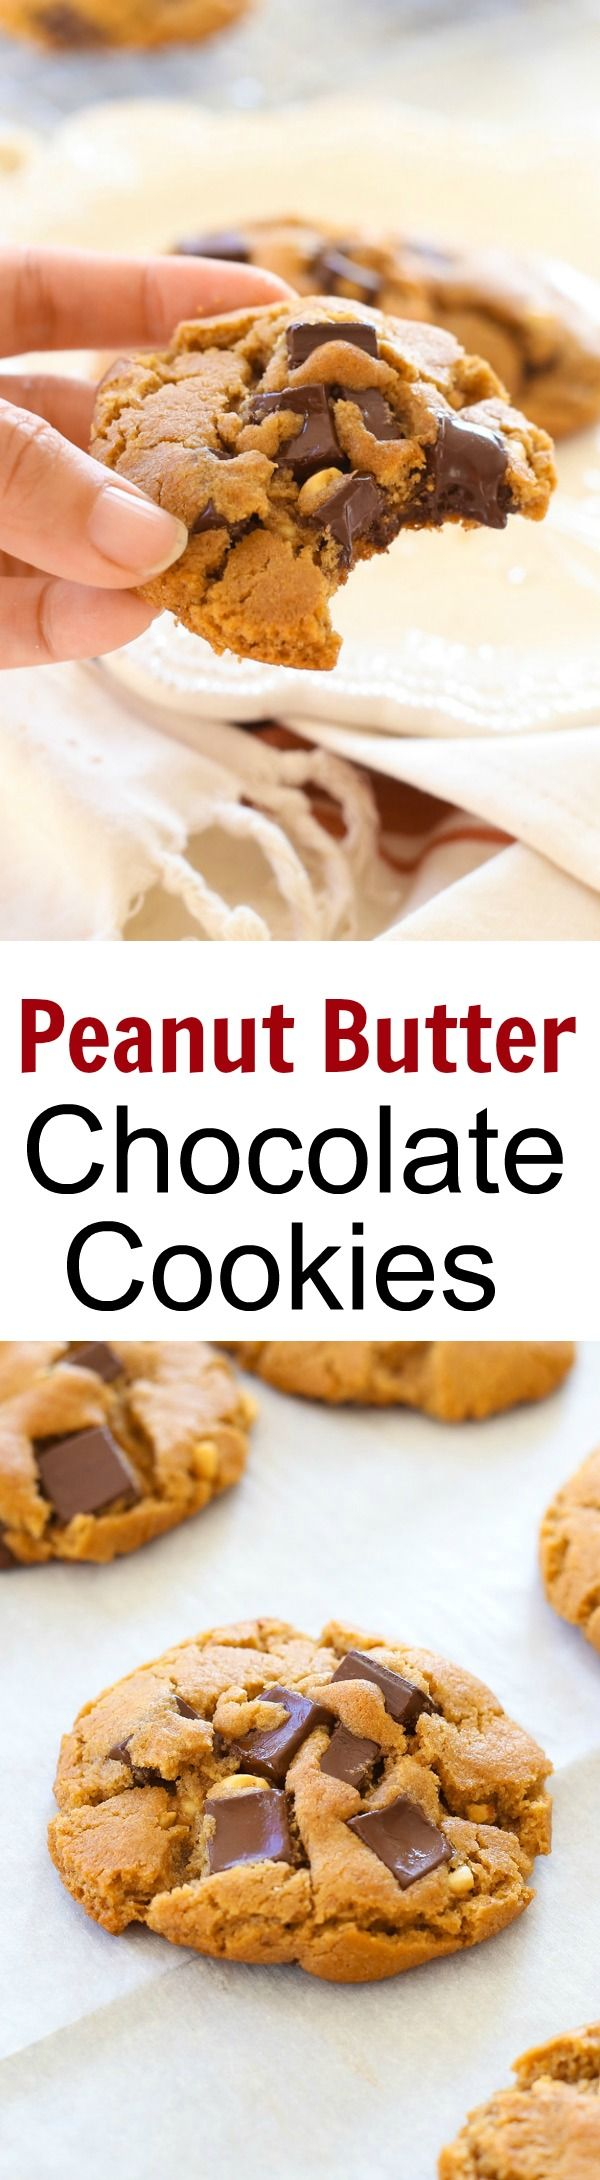 Peanut Butter Dark Chocolate Cookies  C buttery cookies loaded with chocolate and peanut butter  So delicious you can  t stop eating   rasamalaysia com